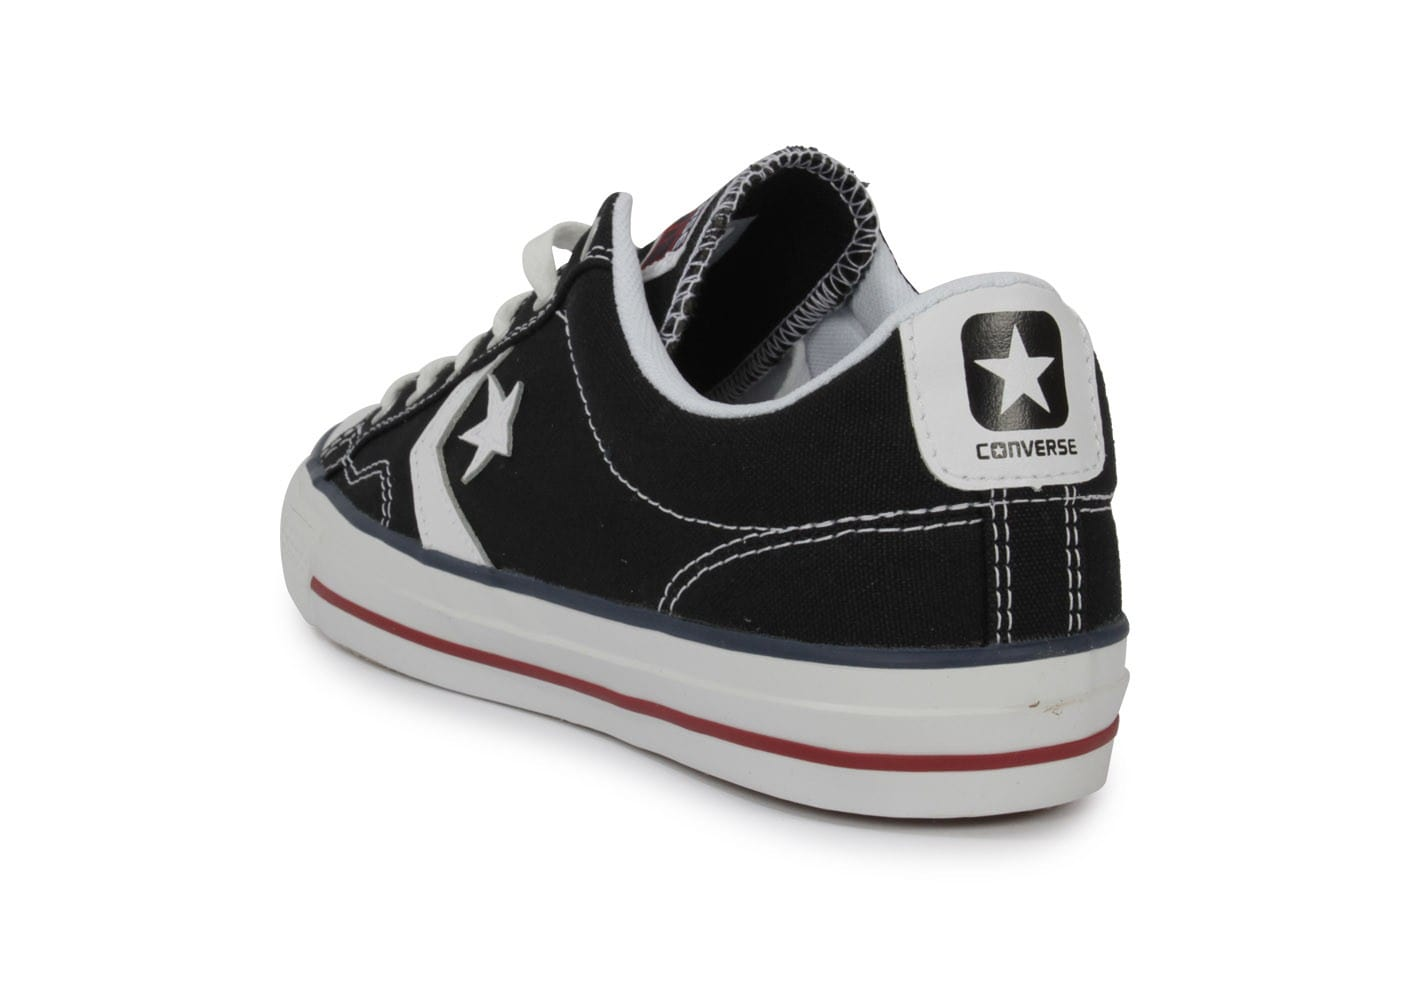 converse star player noire chaussures homme chausport. Black Bedroom Furniture Sets. Home Design Ideas